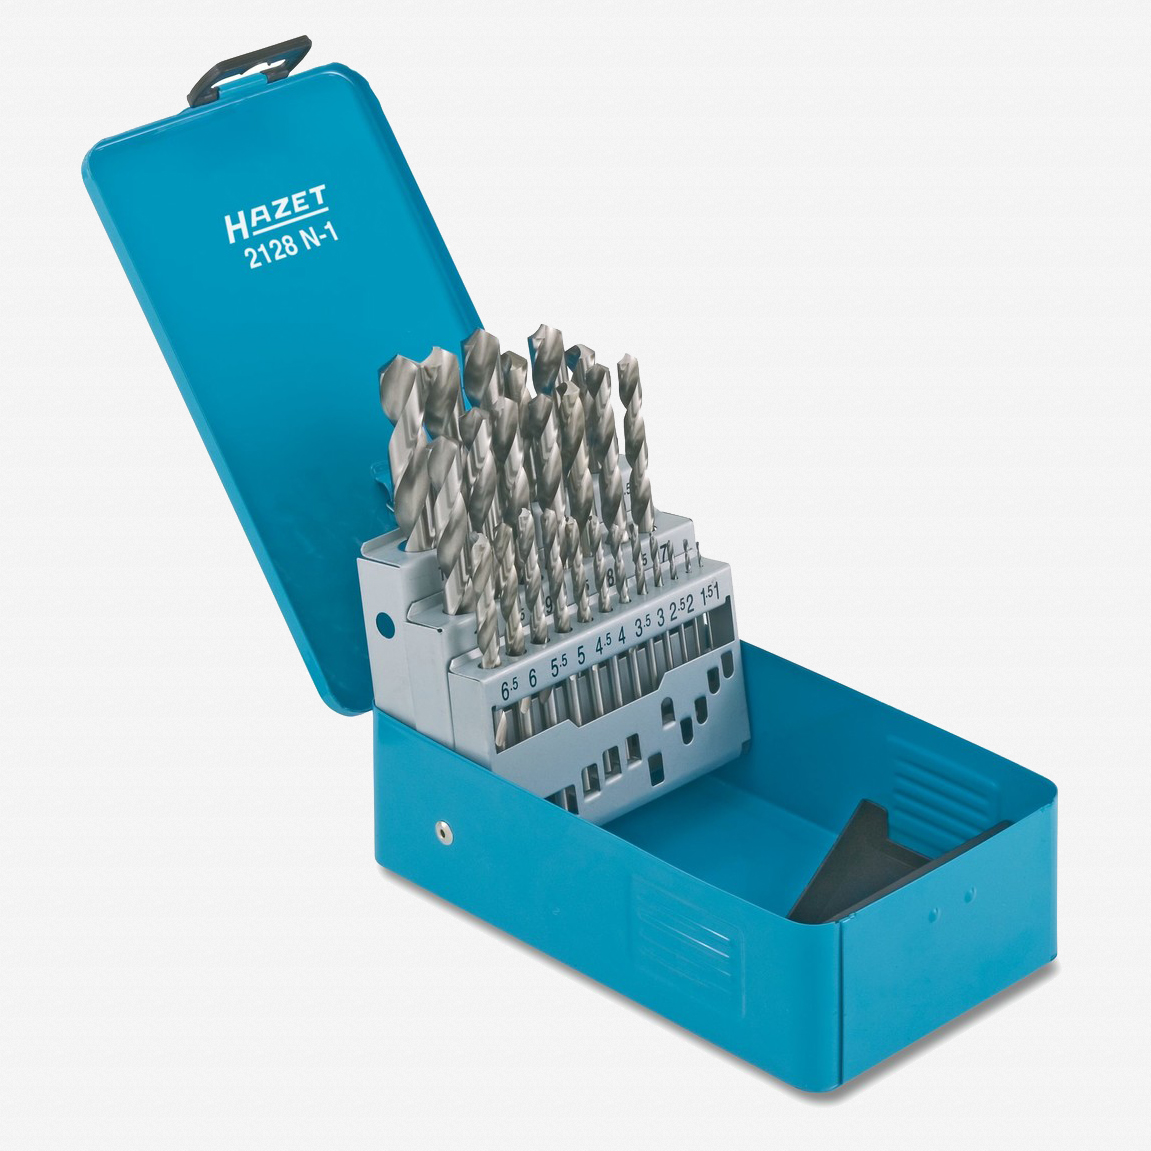 Hazet 2128N-1 HSS Twist Drill Bits in Case, 25 pcs - KC Tool